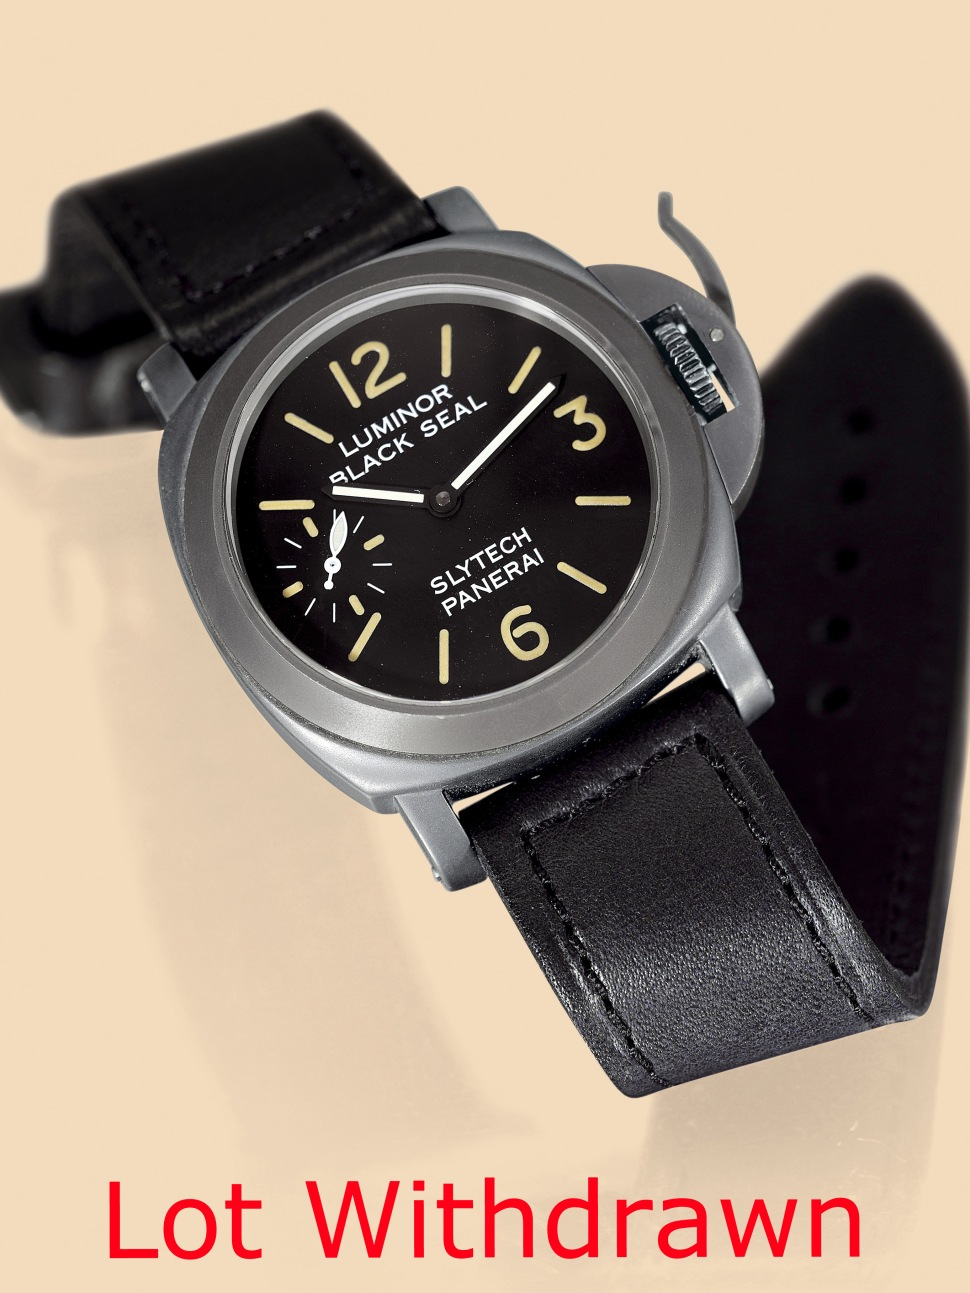 190902-panerai-5218-218-rinaldi-fake-antiquorum-2007